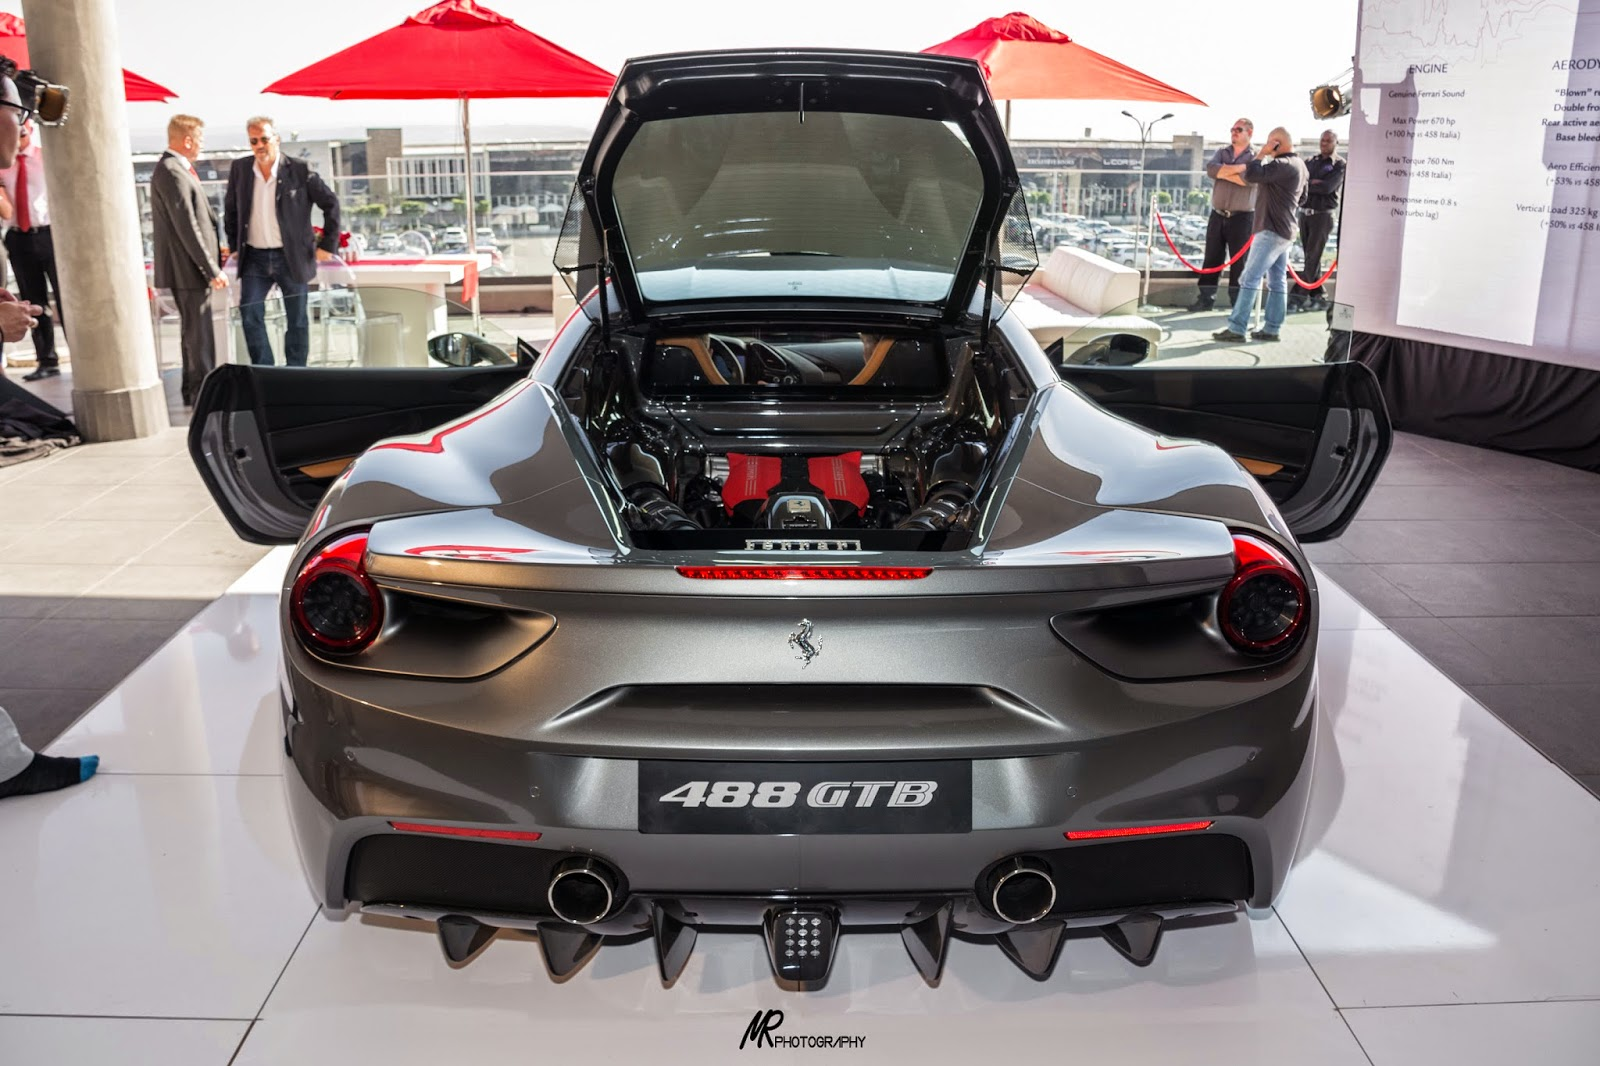 new car launches south africa 2015The New Ferrari 488 GTB Unveiled In Johannesburg South Africa